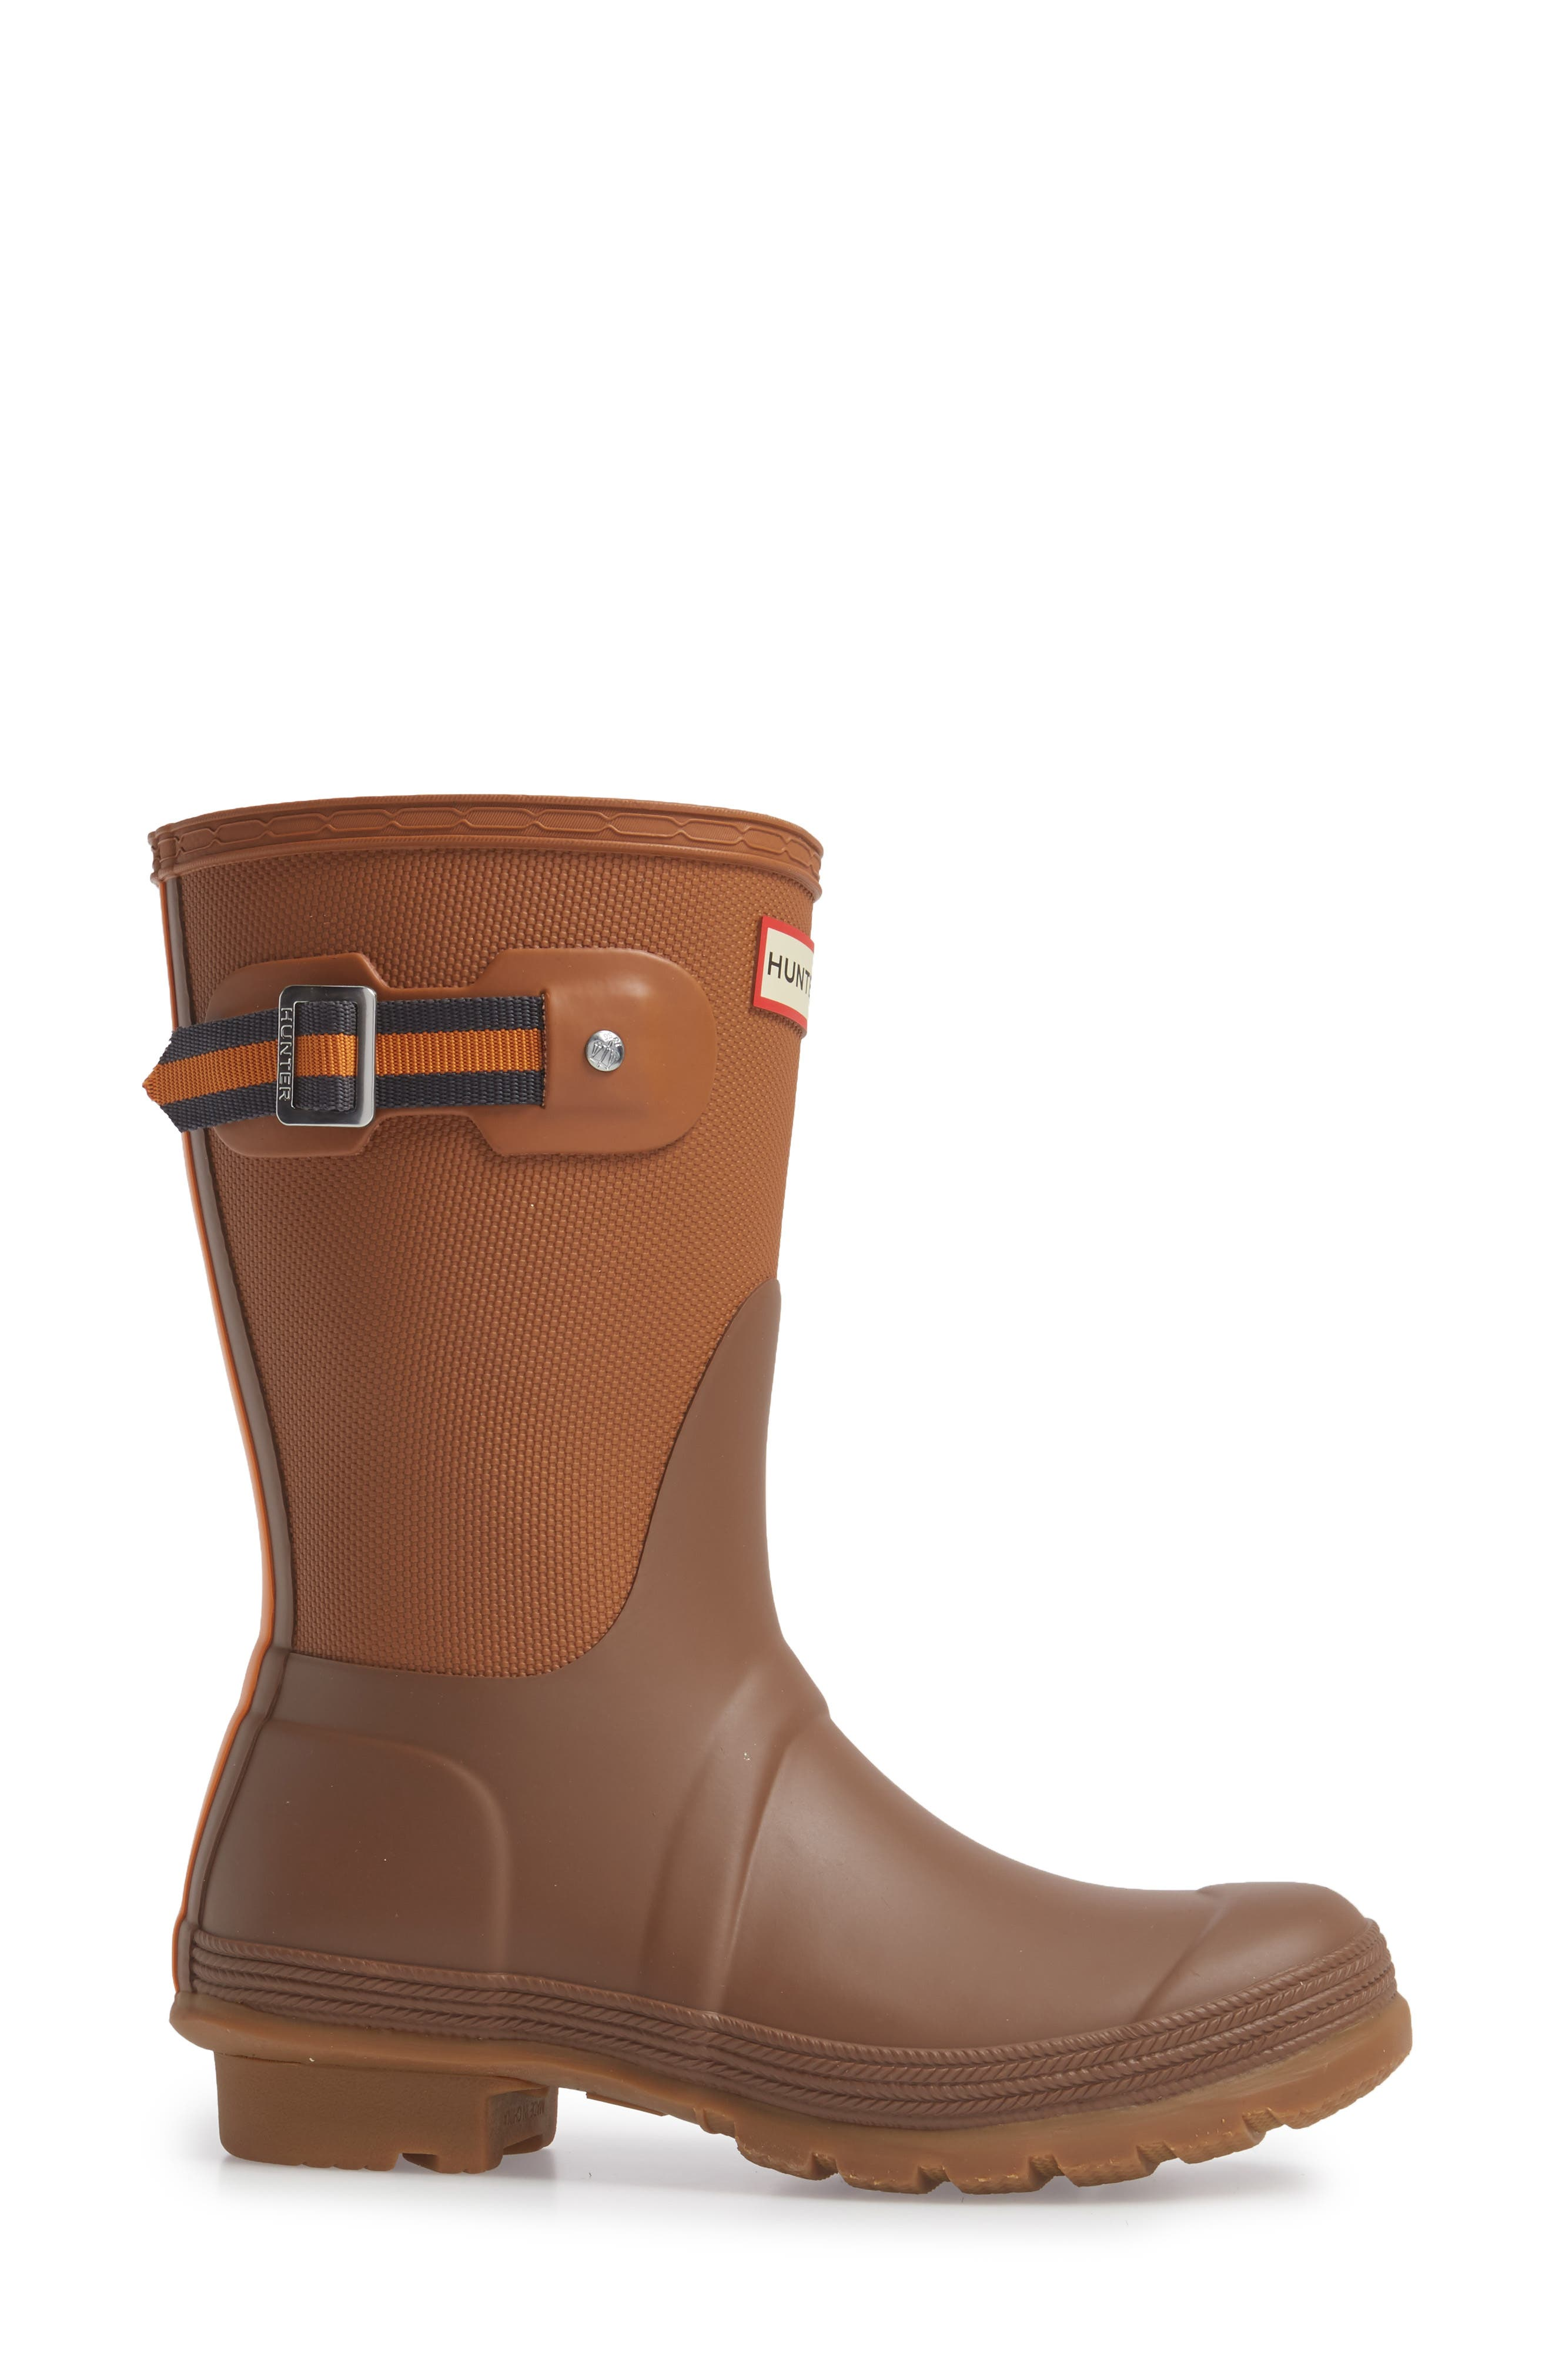 Alternate Image 3  - Hunter Original Sissinghurst Short Rain Boot (Women)